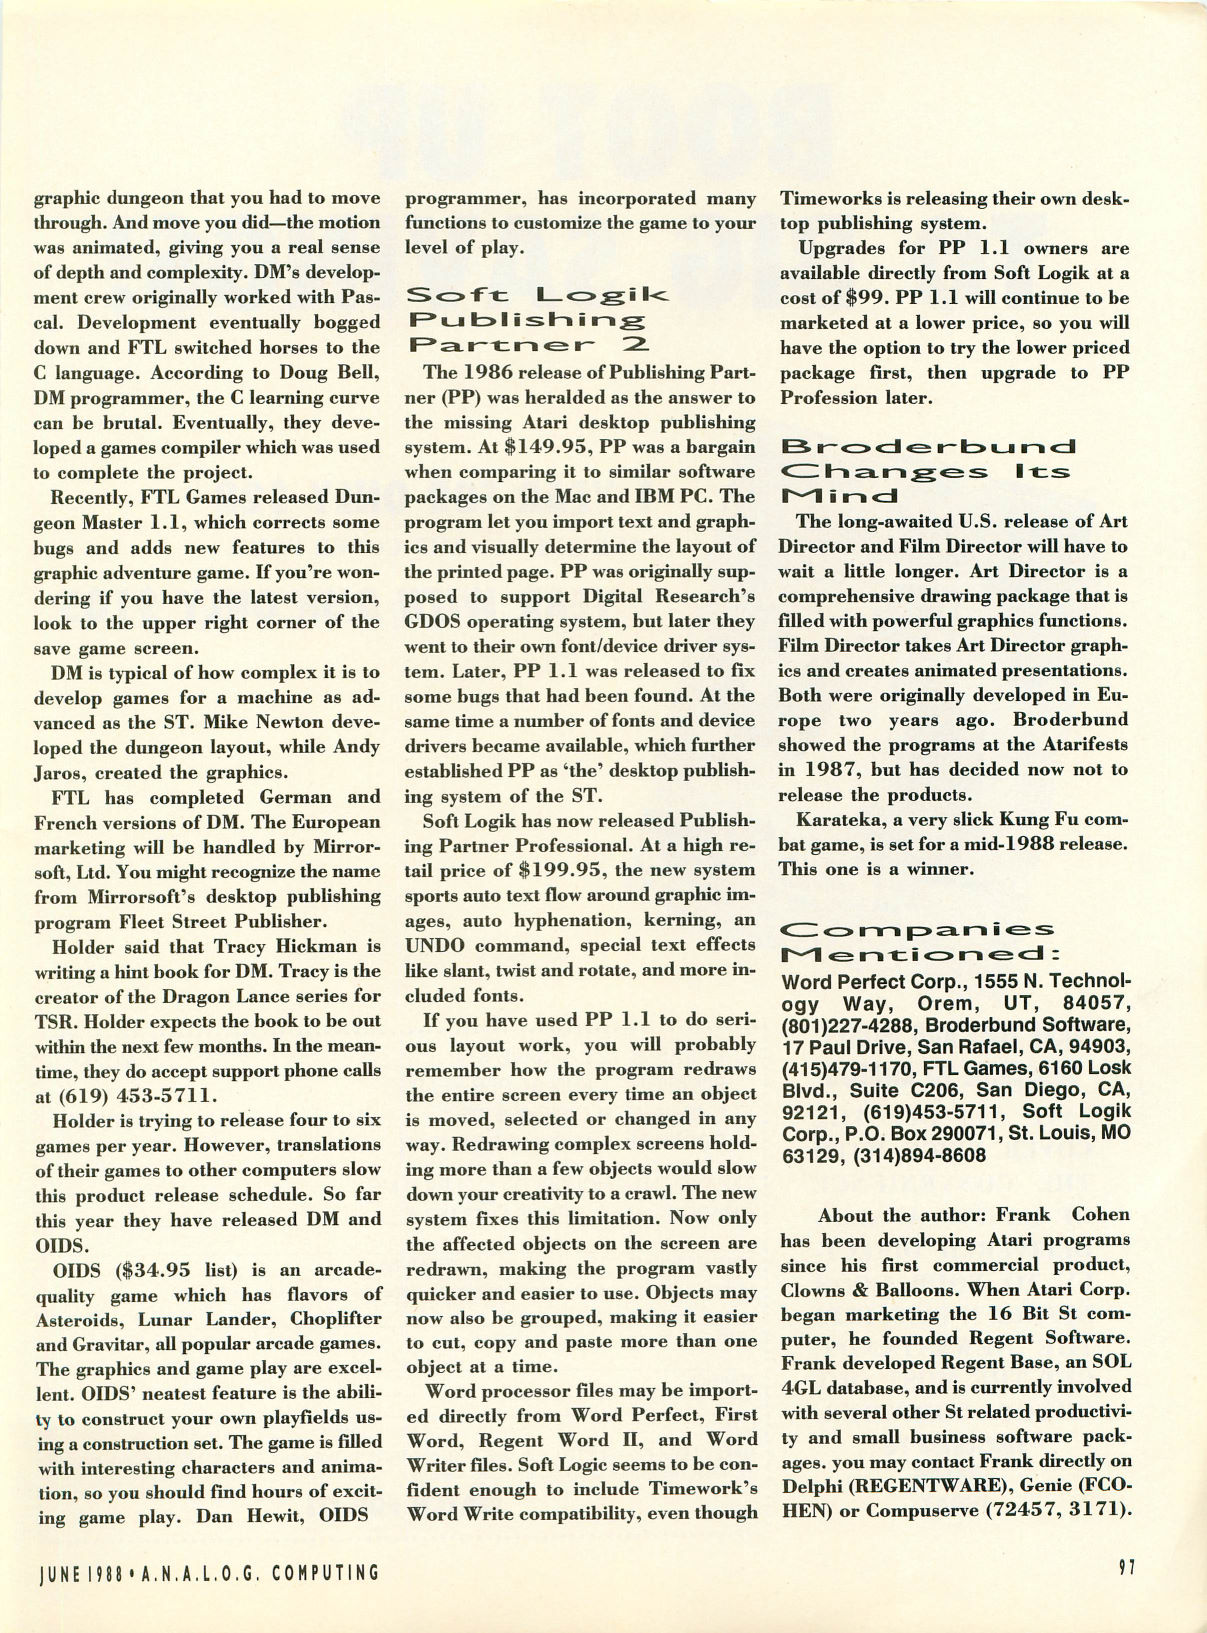 Dungeon Master for Atari ST Article published in American magazine 'Analog Computing', Issue #61 June 1988, Page 97